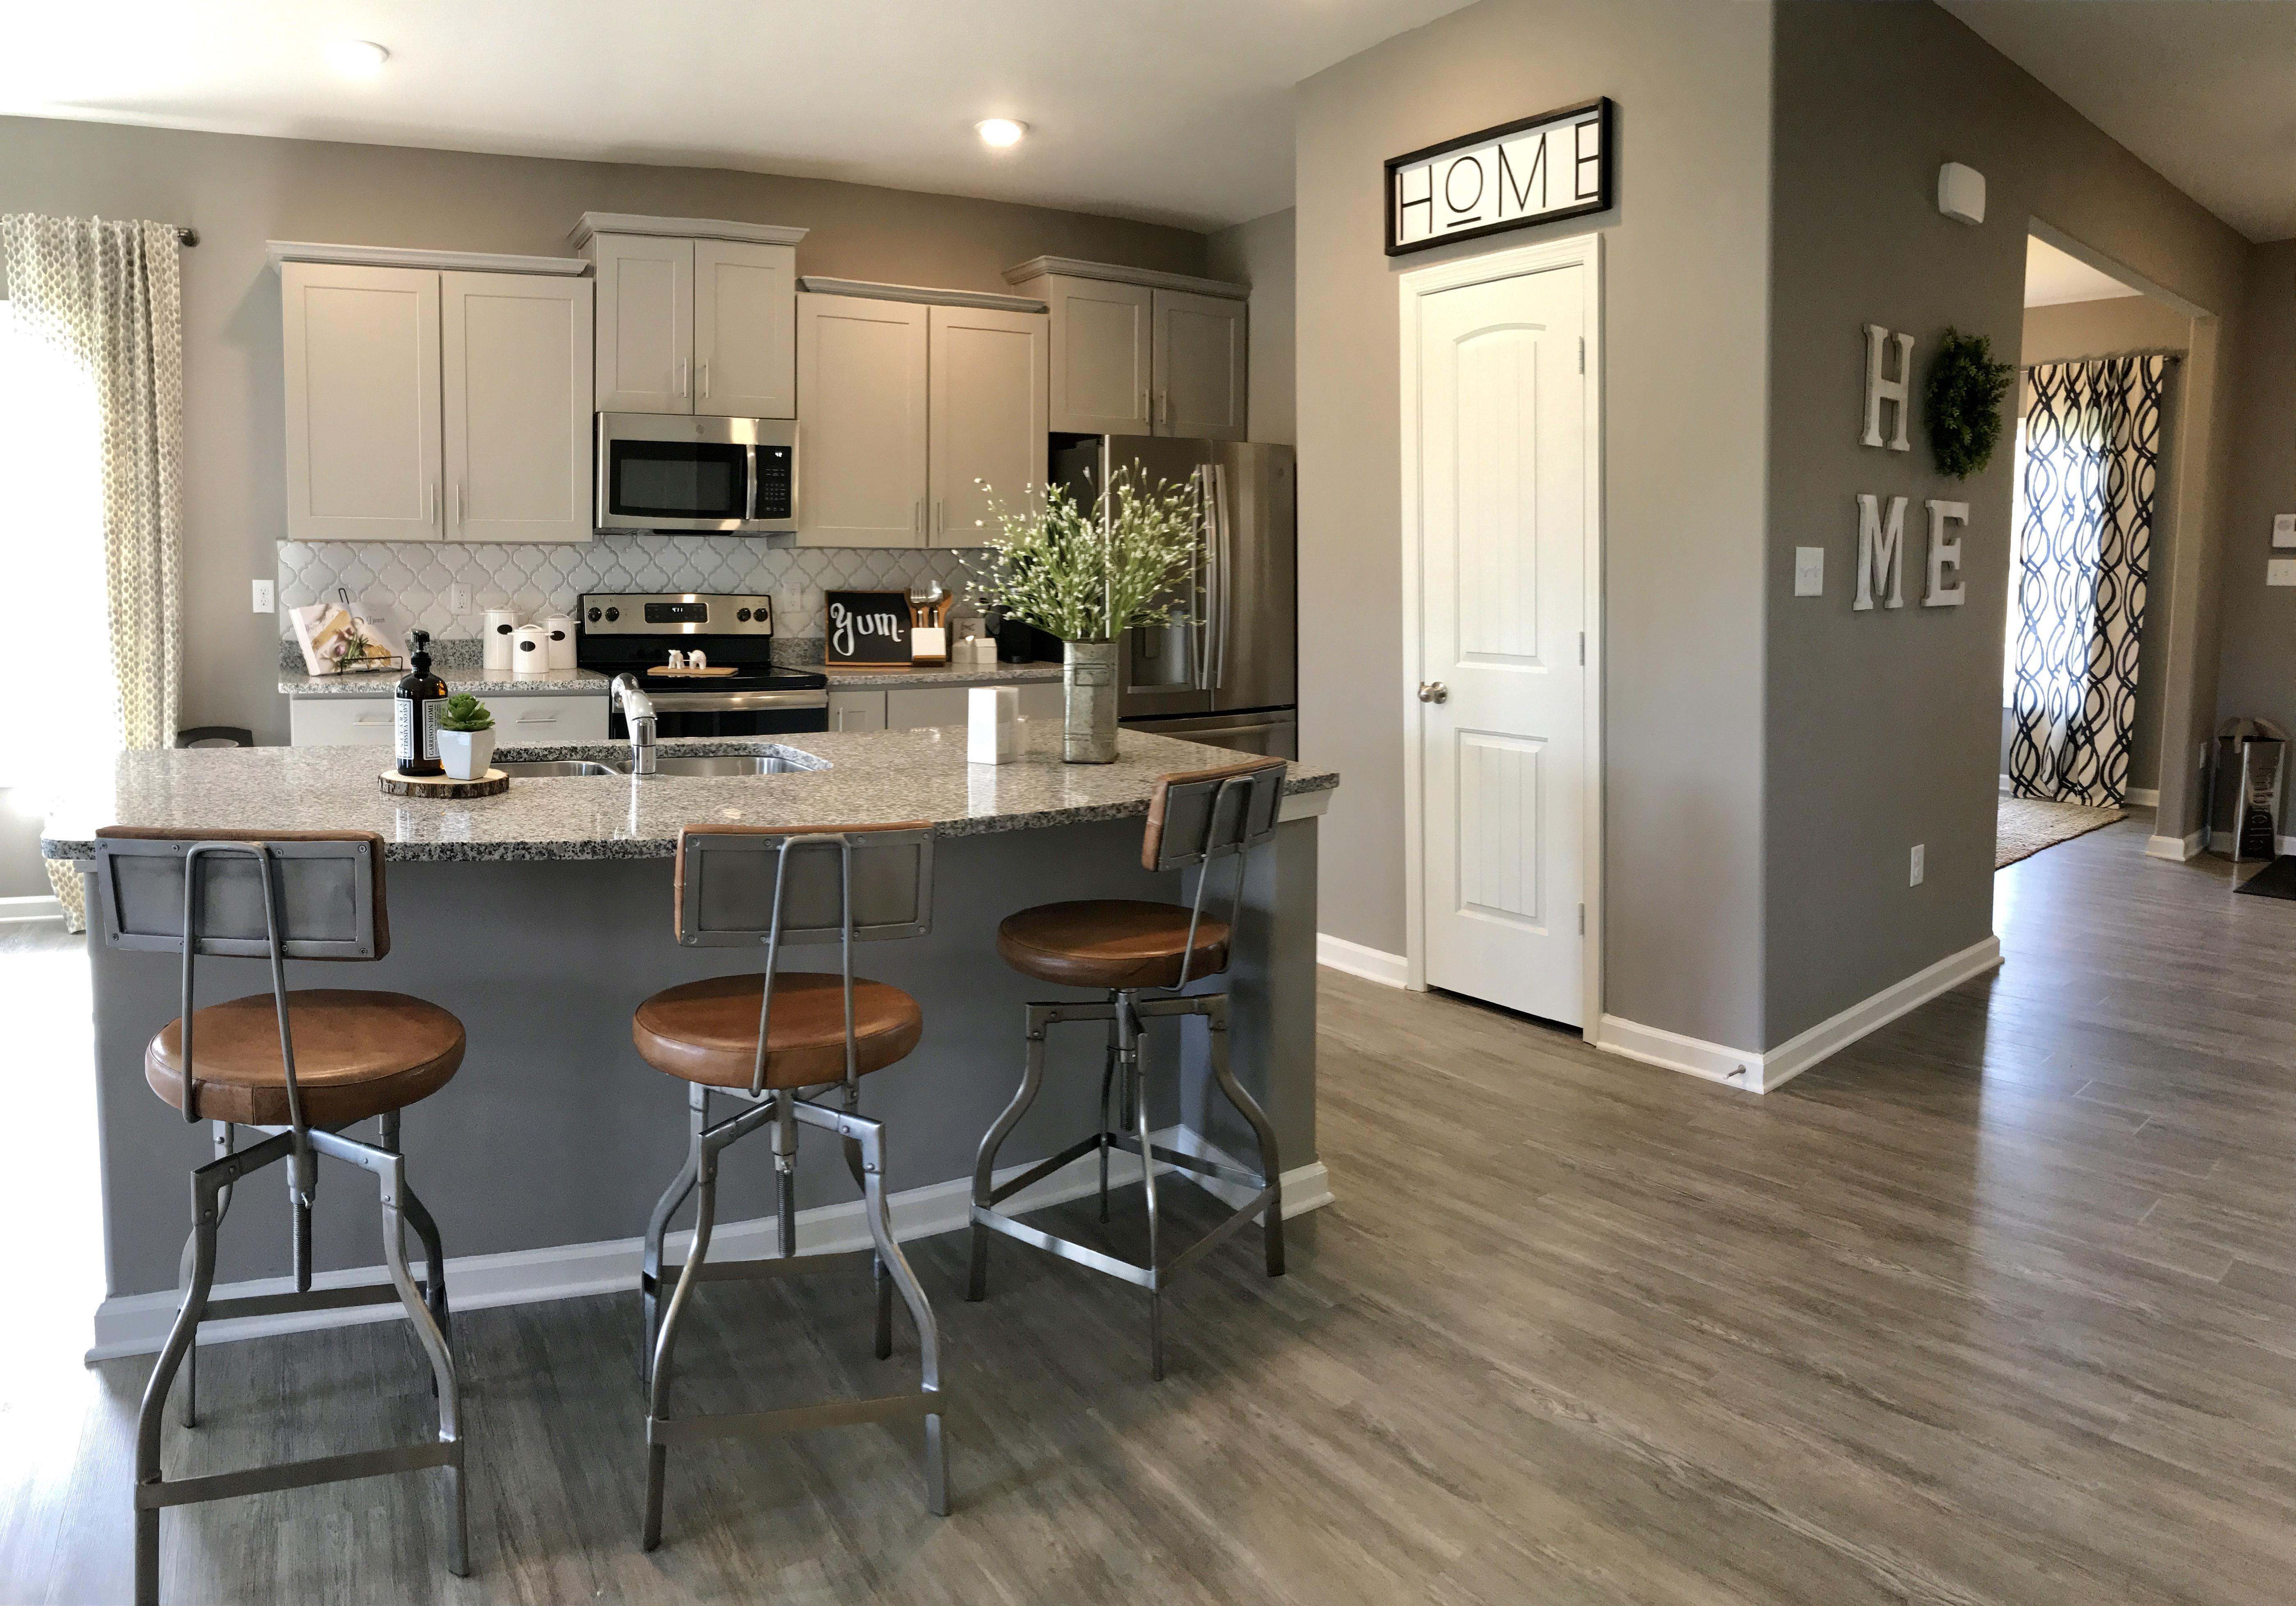 Kitchen featured in The Elmsted 4 Bedroom By Boyd Homes in Richmond-Petersburg, VA